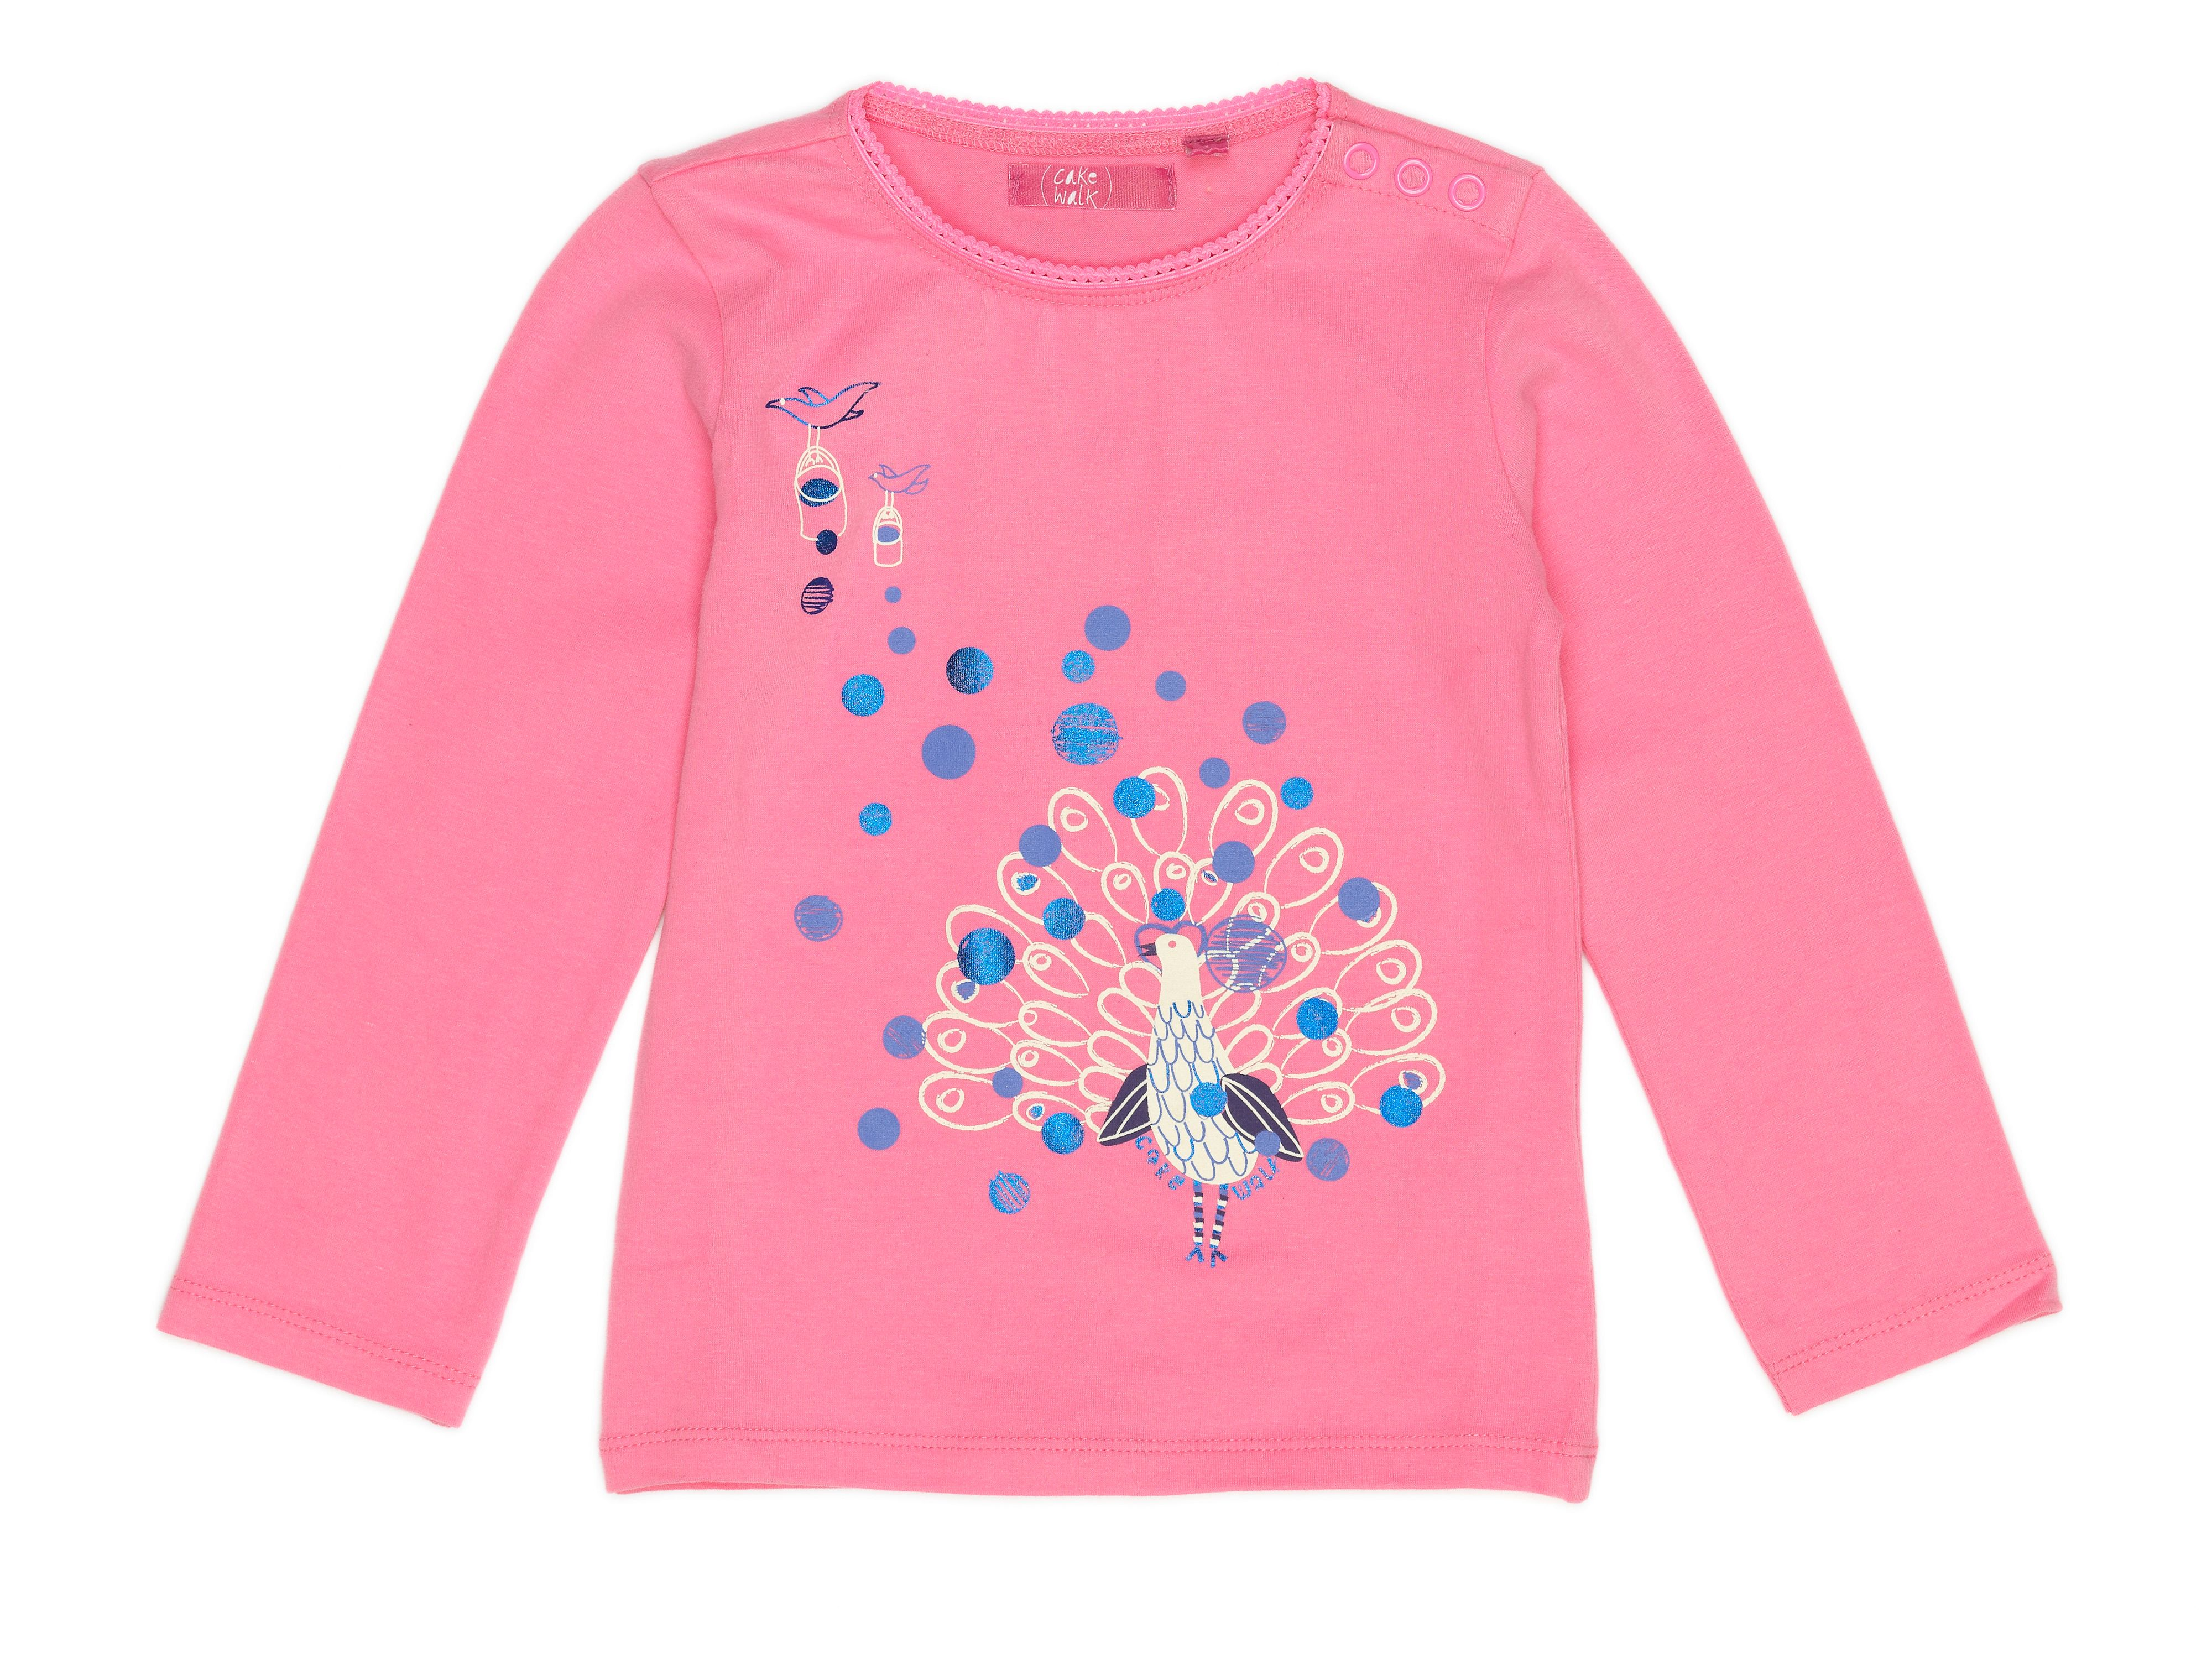 Cakewalk Baby girls long sleeve T-Shirt with product image